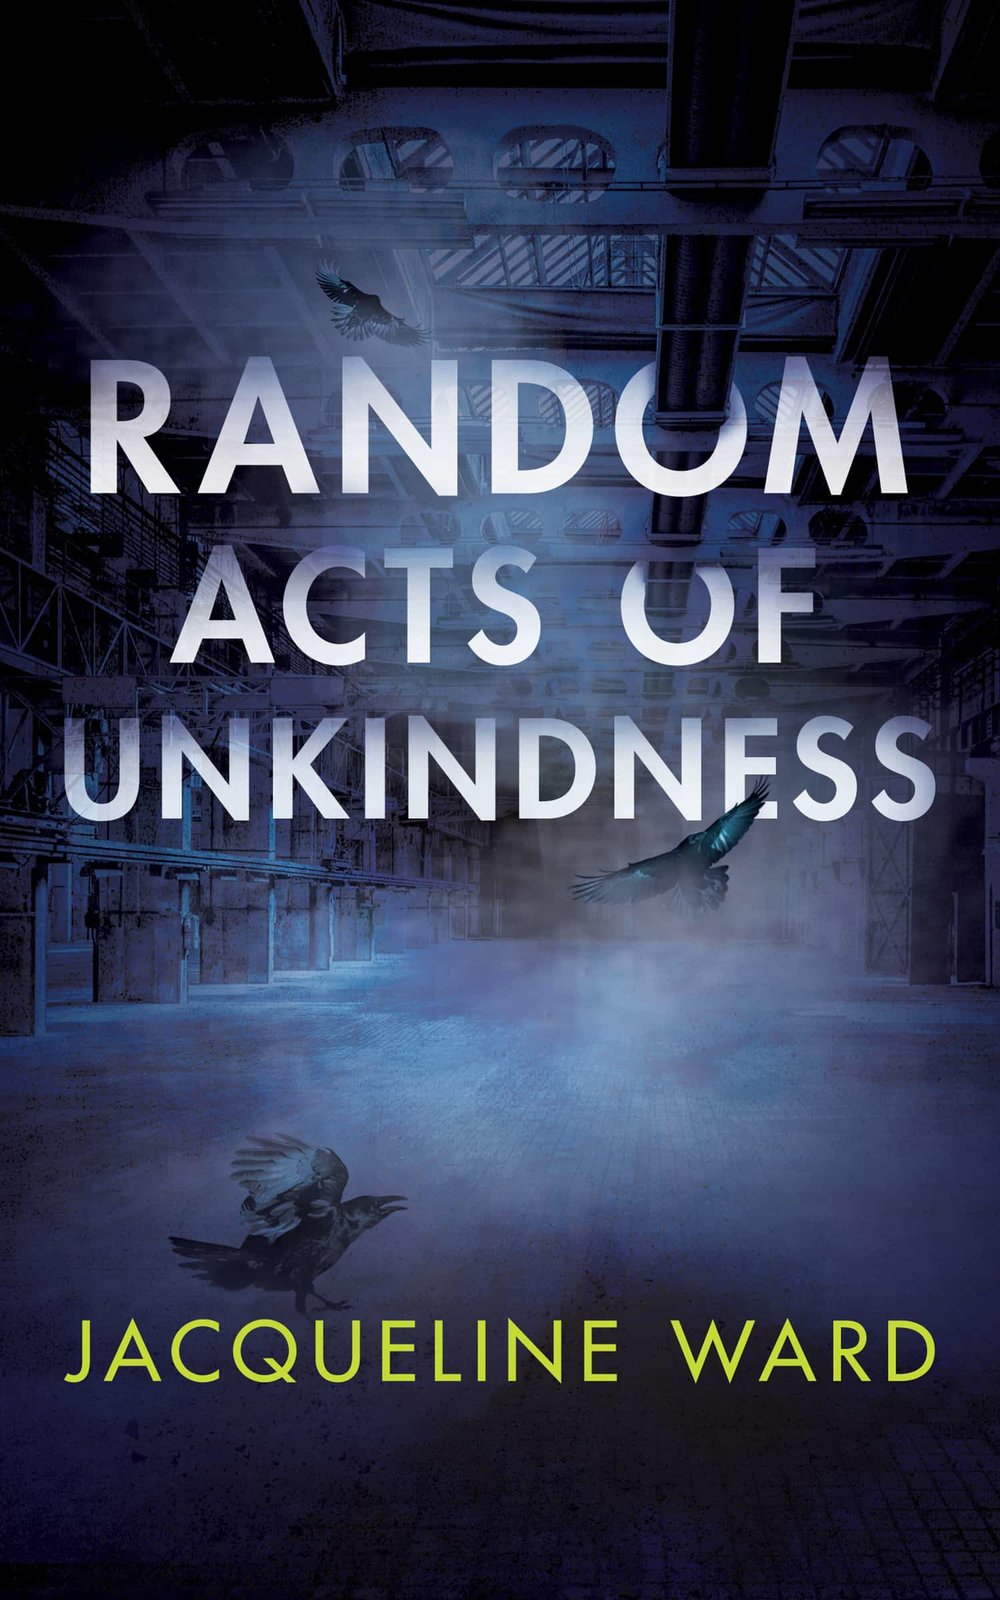 Random Acts of Unkindness - DS Jan Pearce has a big problem. Her fifteen year old son, Aiden, is missing. Jan draws together the threads of missing person cases spanning fifty years and finds tragic connections and unsolved questions.Bessy Swain, an elderly woman that Jan finds dead on her search for Aiden, and whose own son, Thomas, was also missing, may have the answers.Jan uses Bessy's information and her own skills and instinct to track down the missing boys. But is it too late for Aiden?Set in the North West of England, with the notorious Saddleworth Moor as a backdrop, Random Acts of Unkindness is a story about motherhood, love and loss and how families of missing people suffer the consequences of major crimes involving their loved ones